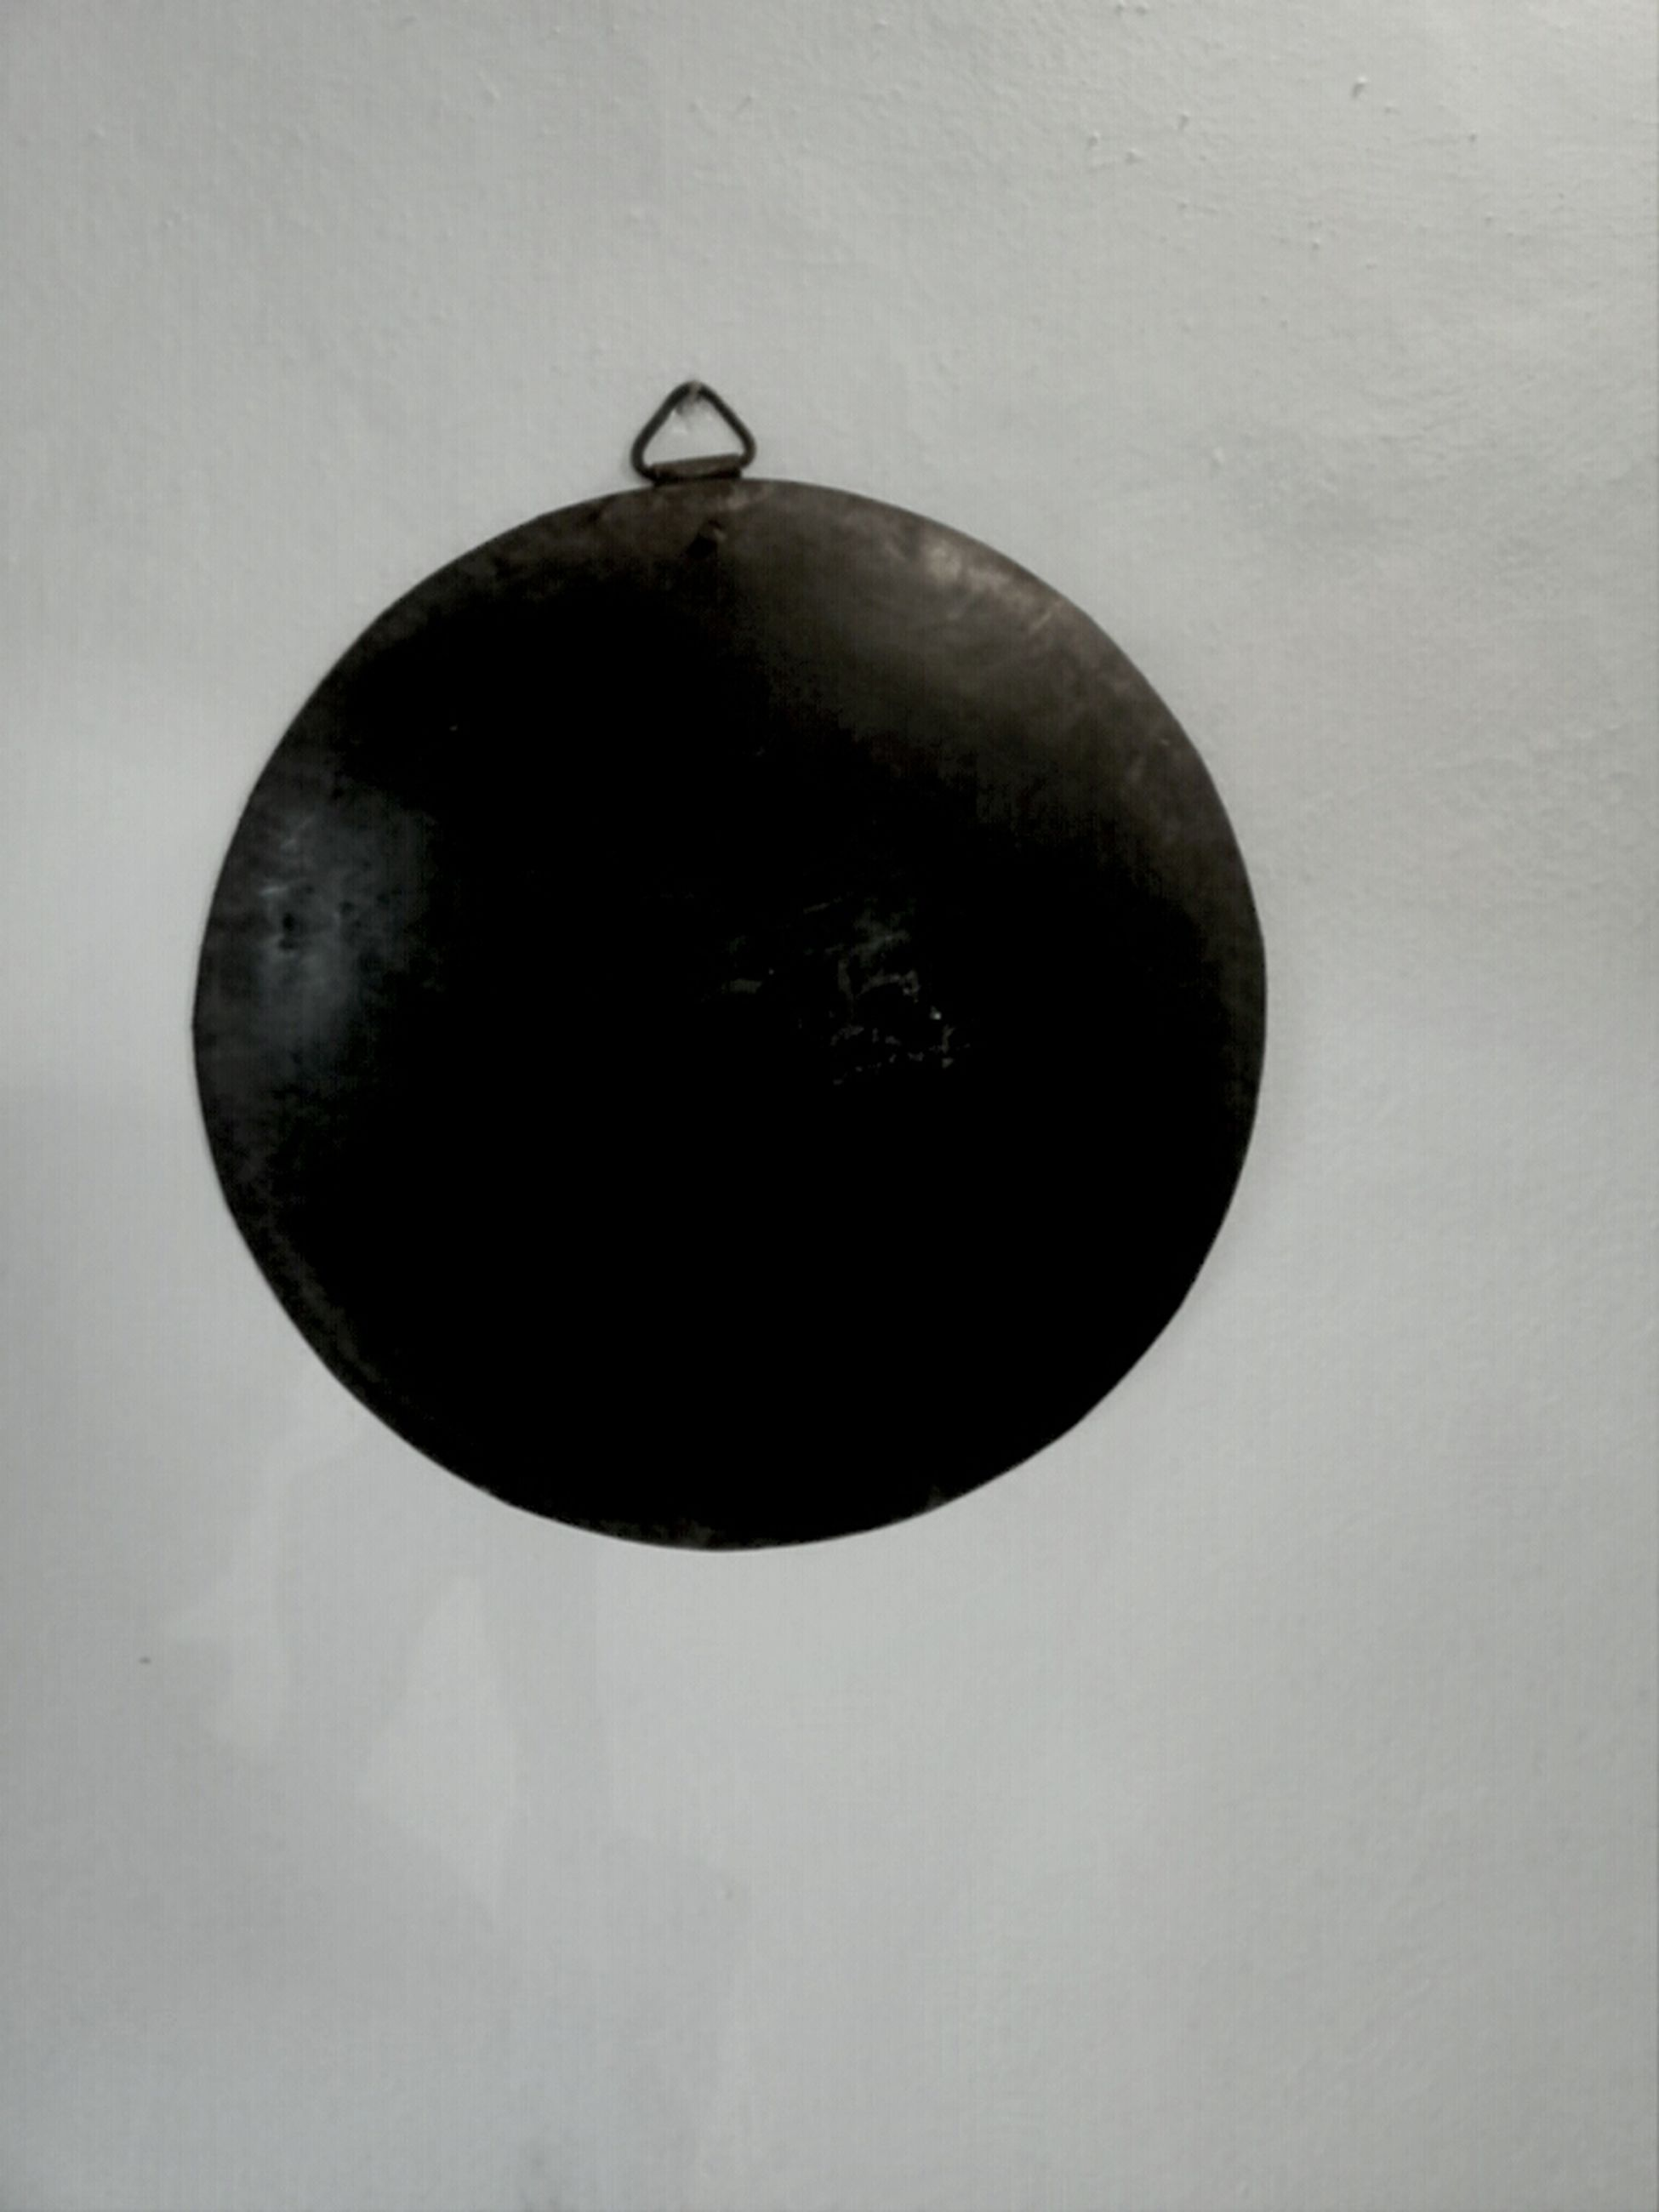 circle, low angle view, indoors, single object, copy space, close-up, geometric shape, sphere, still life, no people, wall - building feature, metal, round, lighting equipment, hanging, shape, reflection, black color, directly above, circular